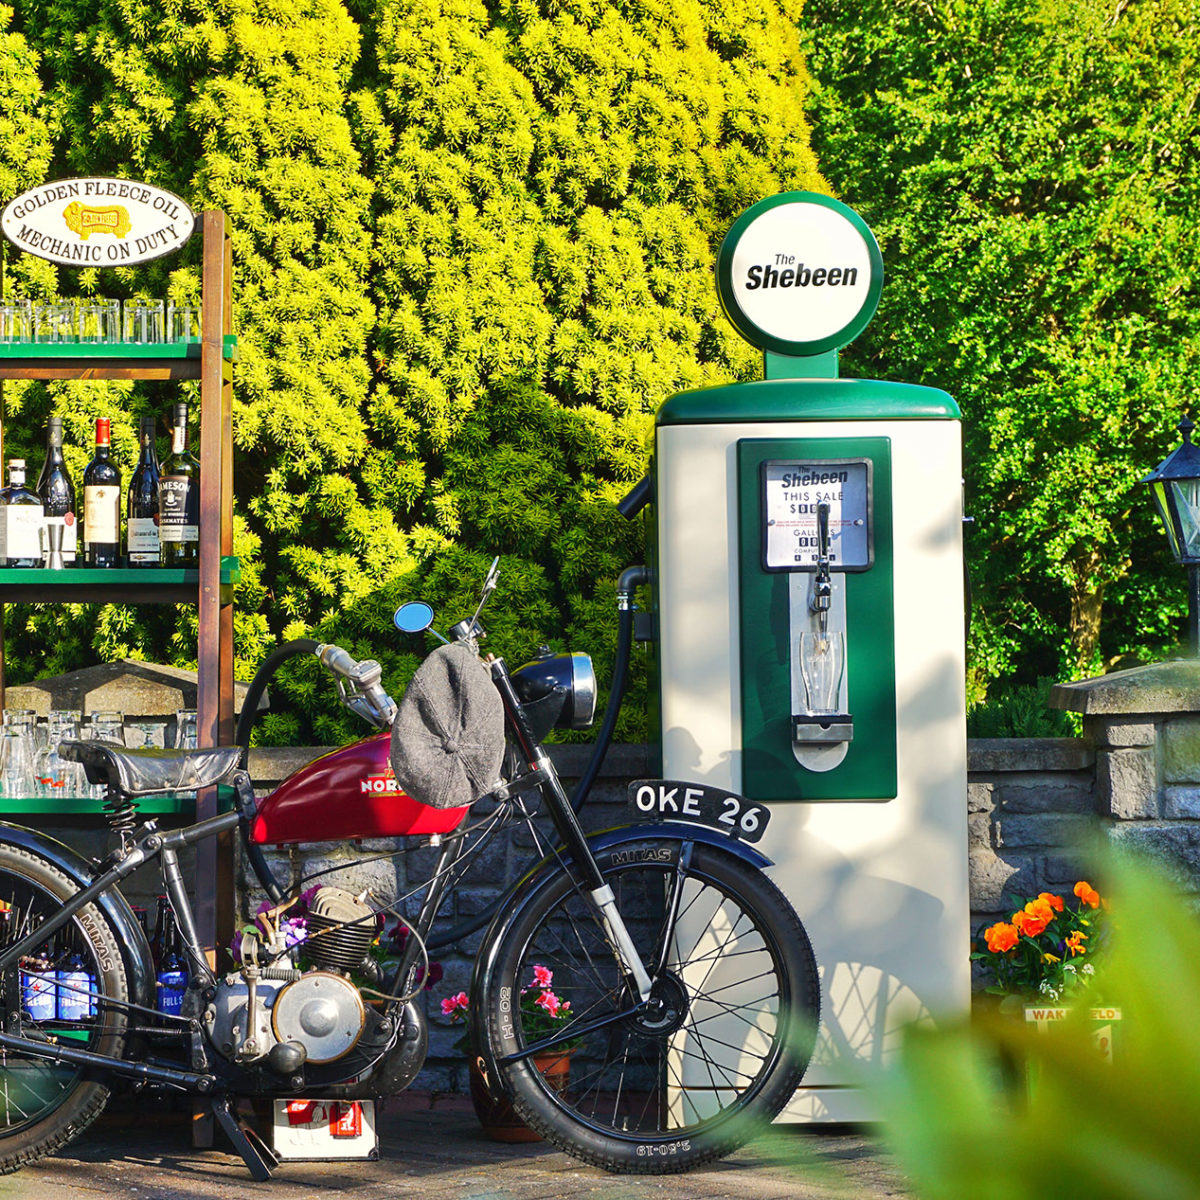 The Vintage Petrol Pump